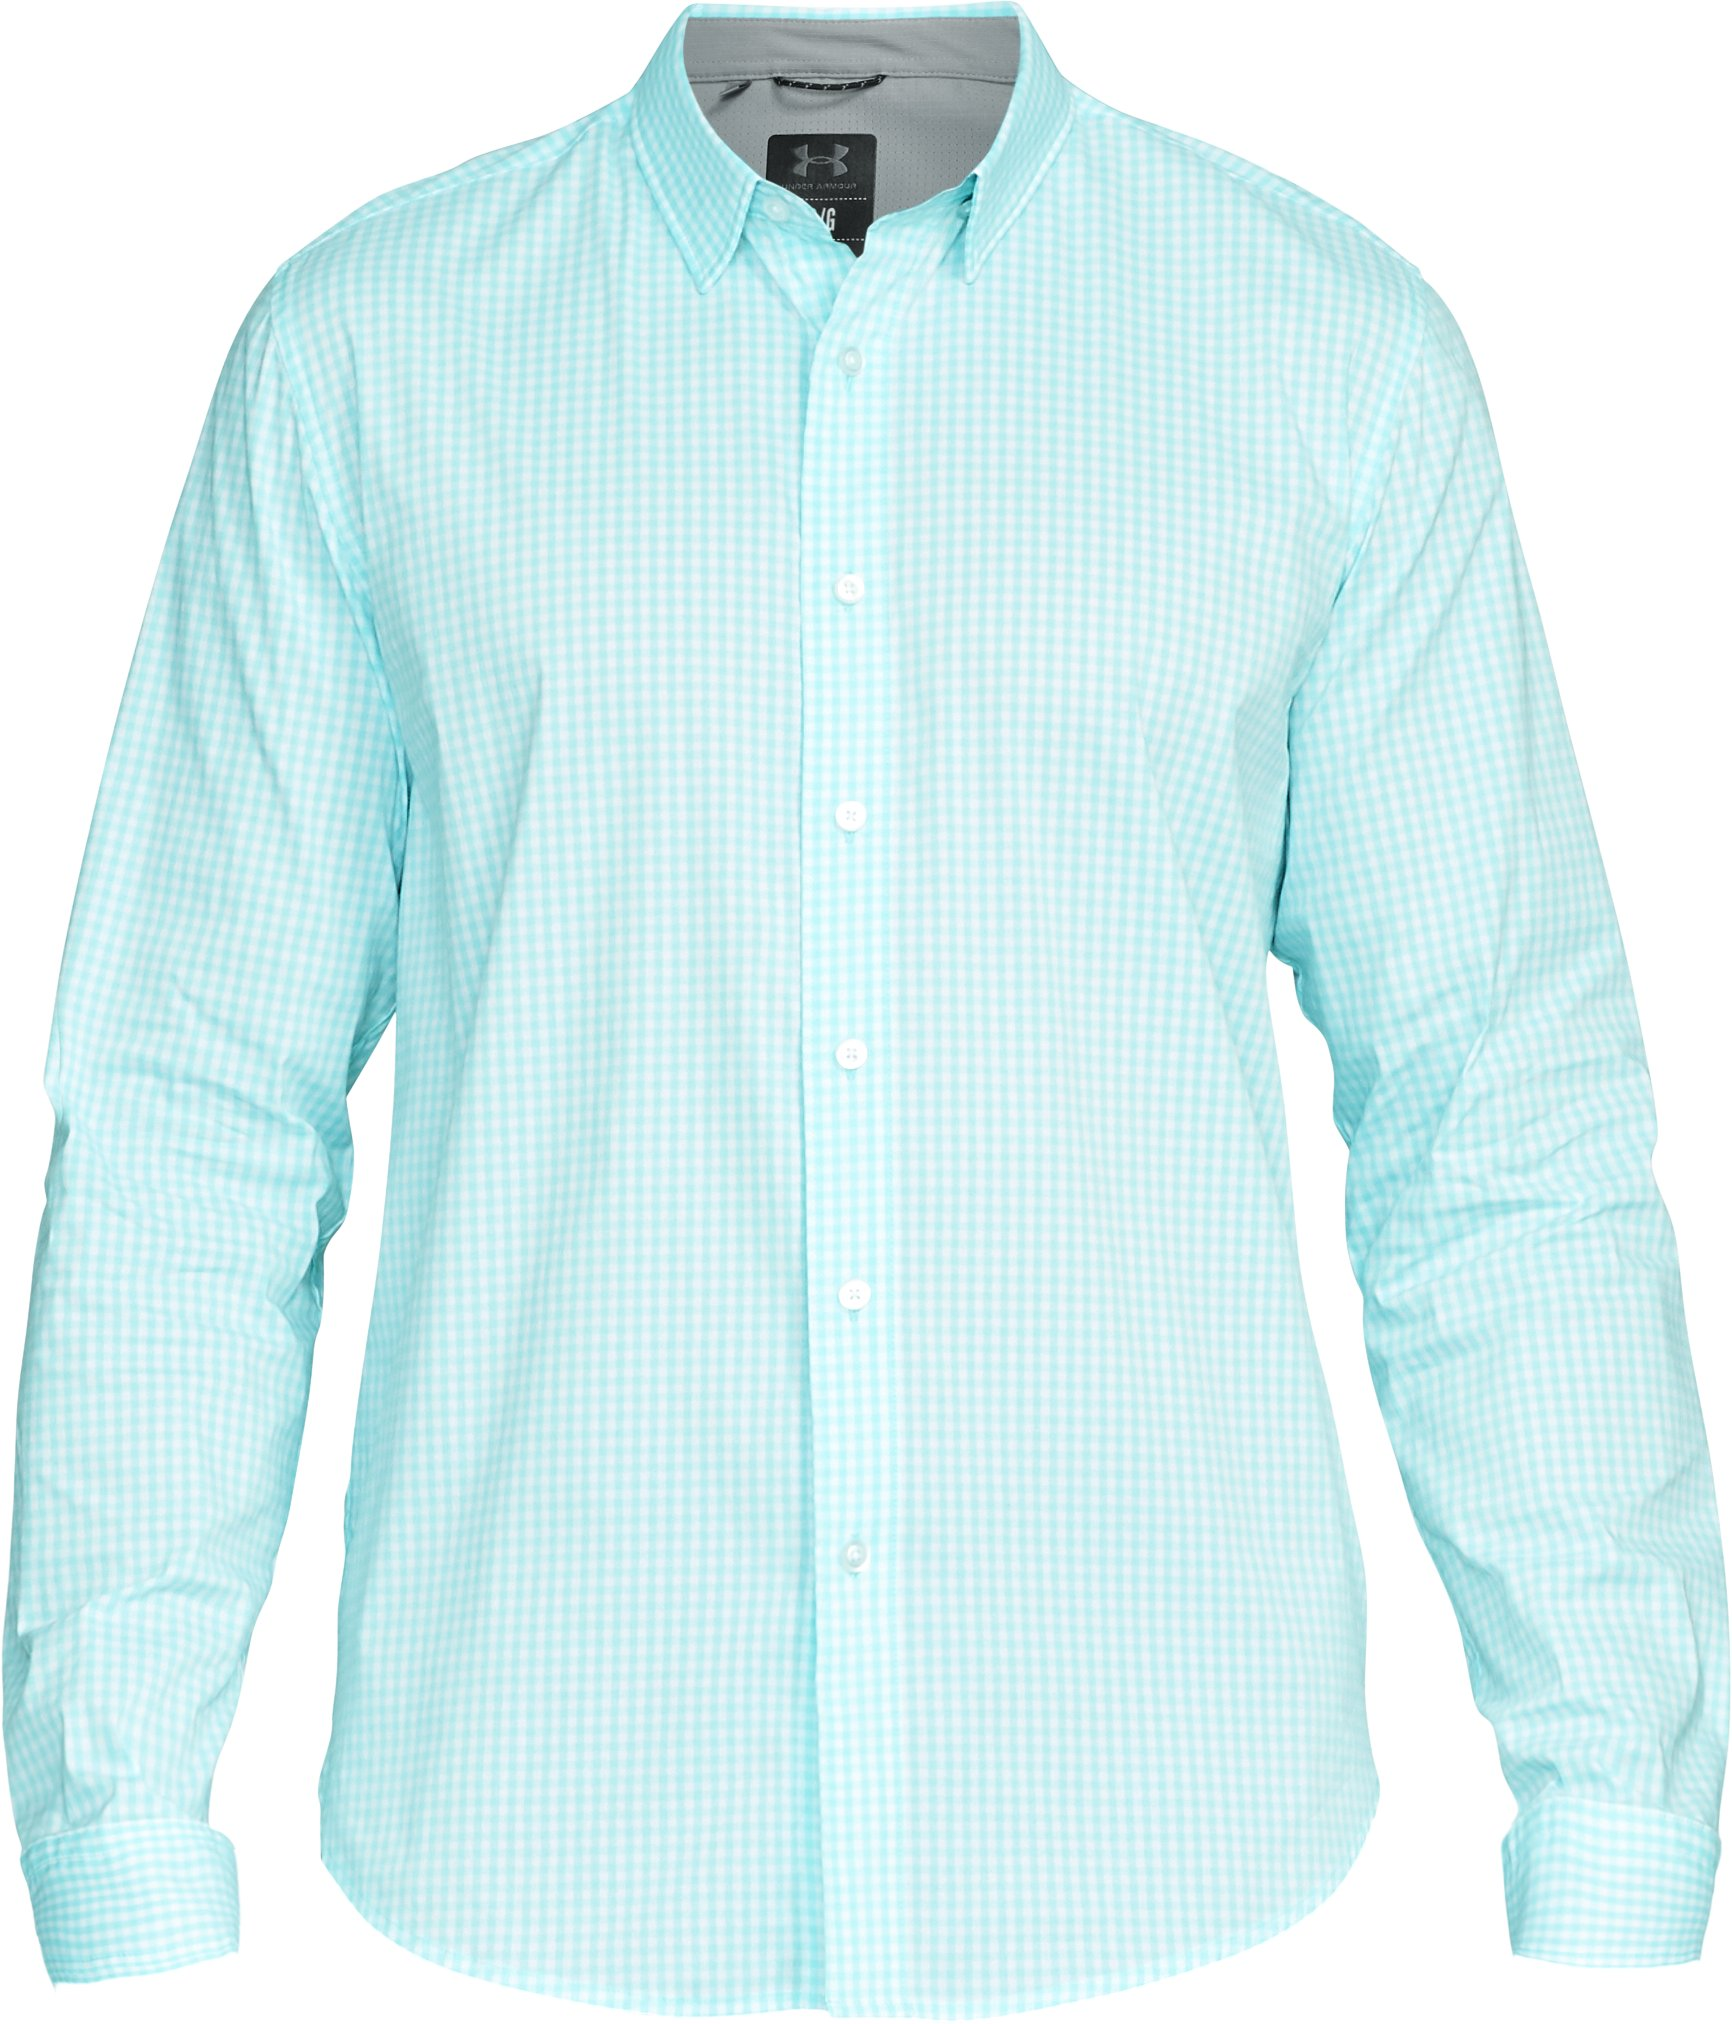 Men's UA Performance Woven Shirt, BLUE INFINITY, undefined